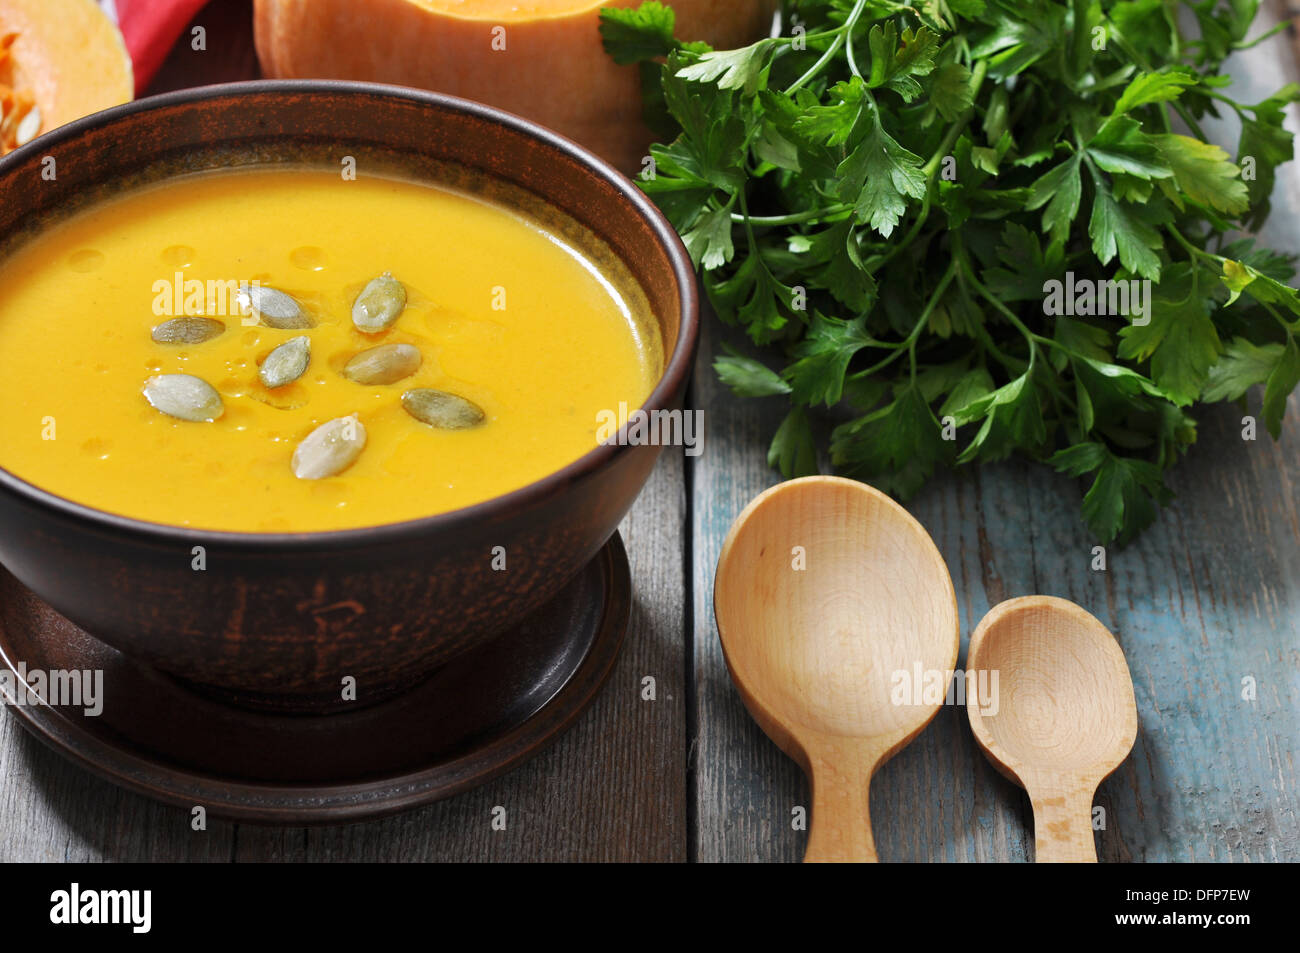 Bowl of pumpkin soup on rustic wooden table. - Stock Image